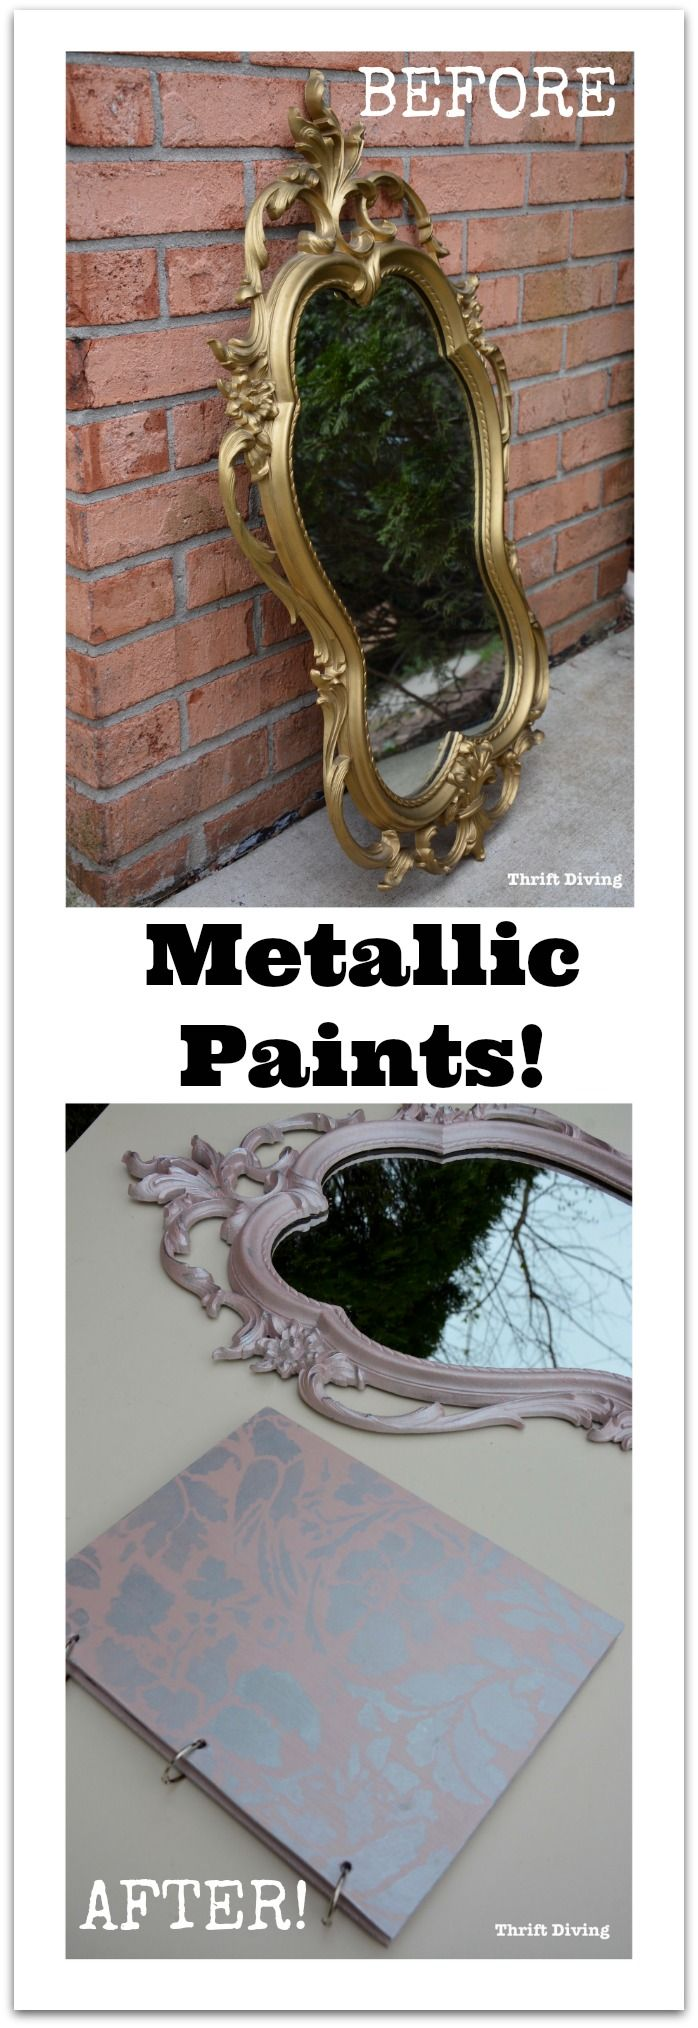 If you've never tried metallic paints, you don't know what you're missing. See how I transformed this $15 thrifted mirror from outdated gold to a pretty Rose Gold metallic paint color. The DIY wooden journal was stenciled with Rose Gold and Metallic Silver! - Thrift Diving